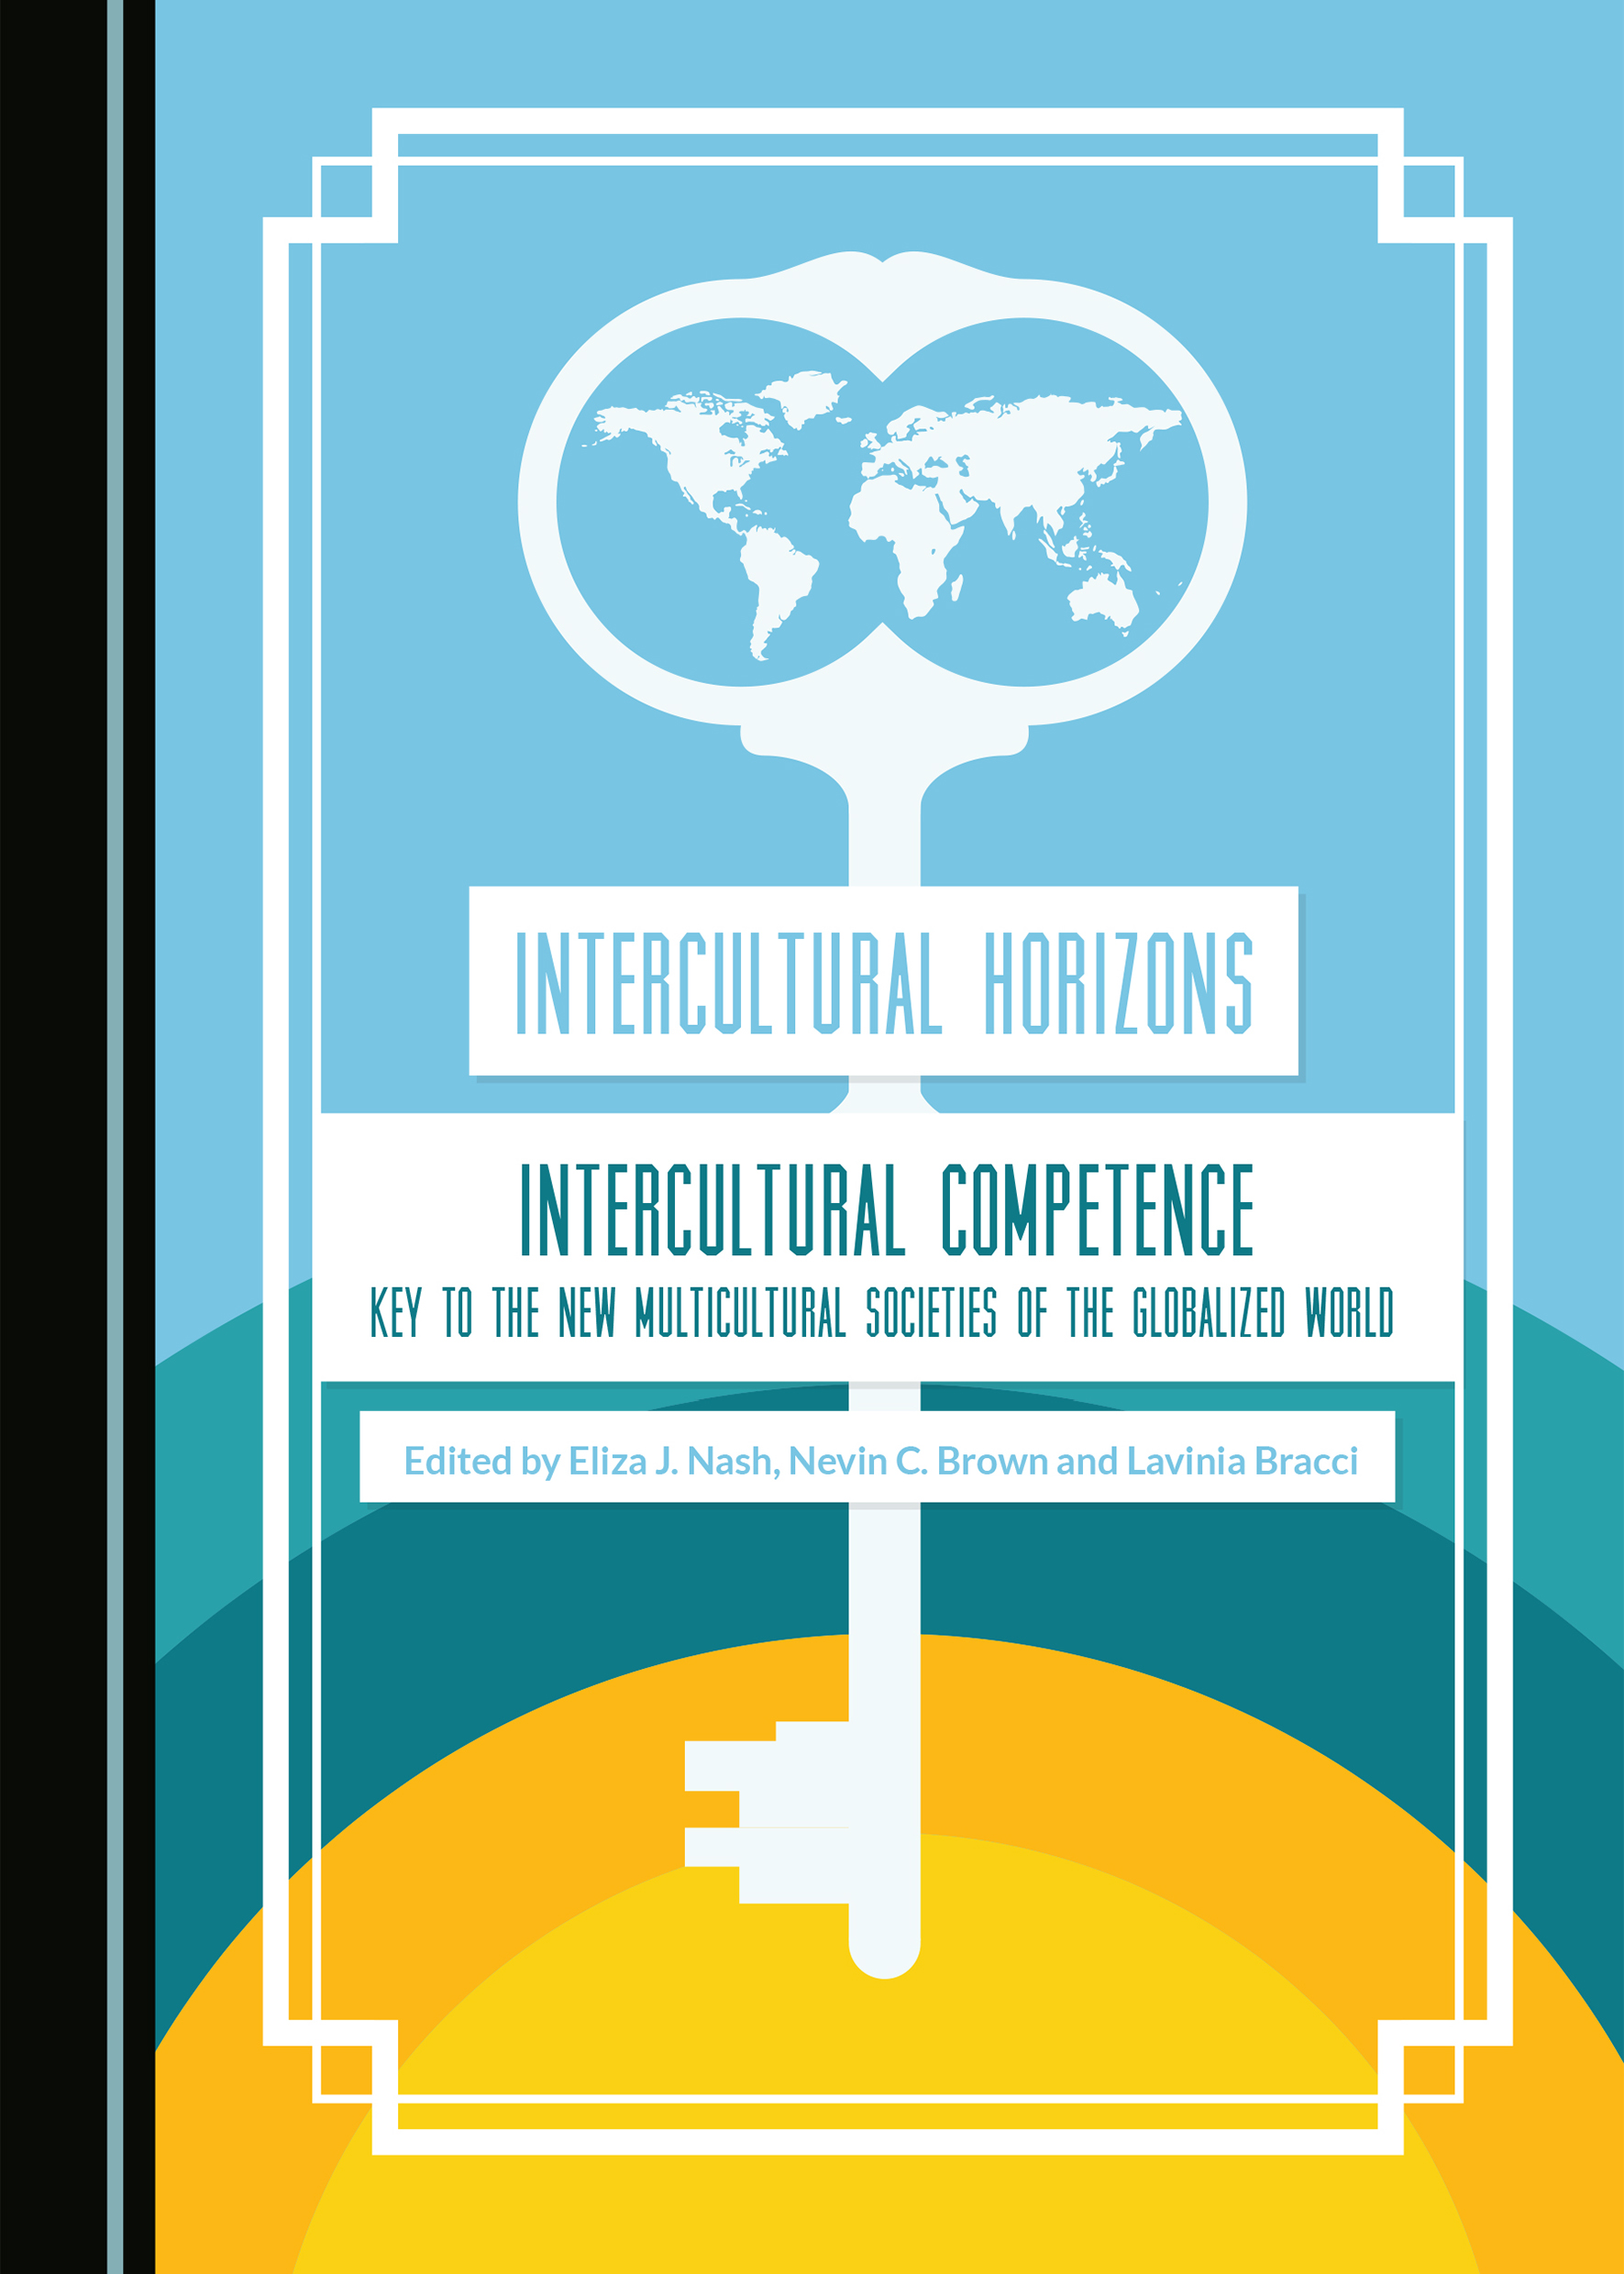 Intercultural Horizons Volume III: Intercultural Competence—Key to the New Multicultural Societies of the Globalized World